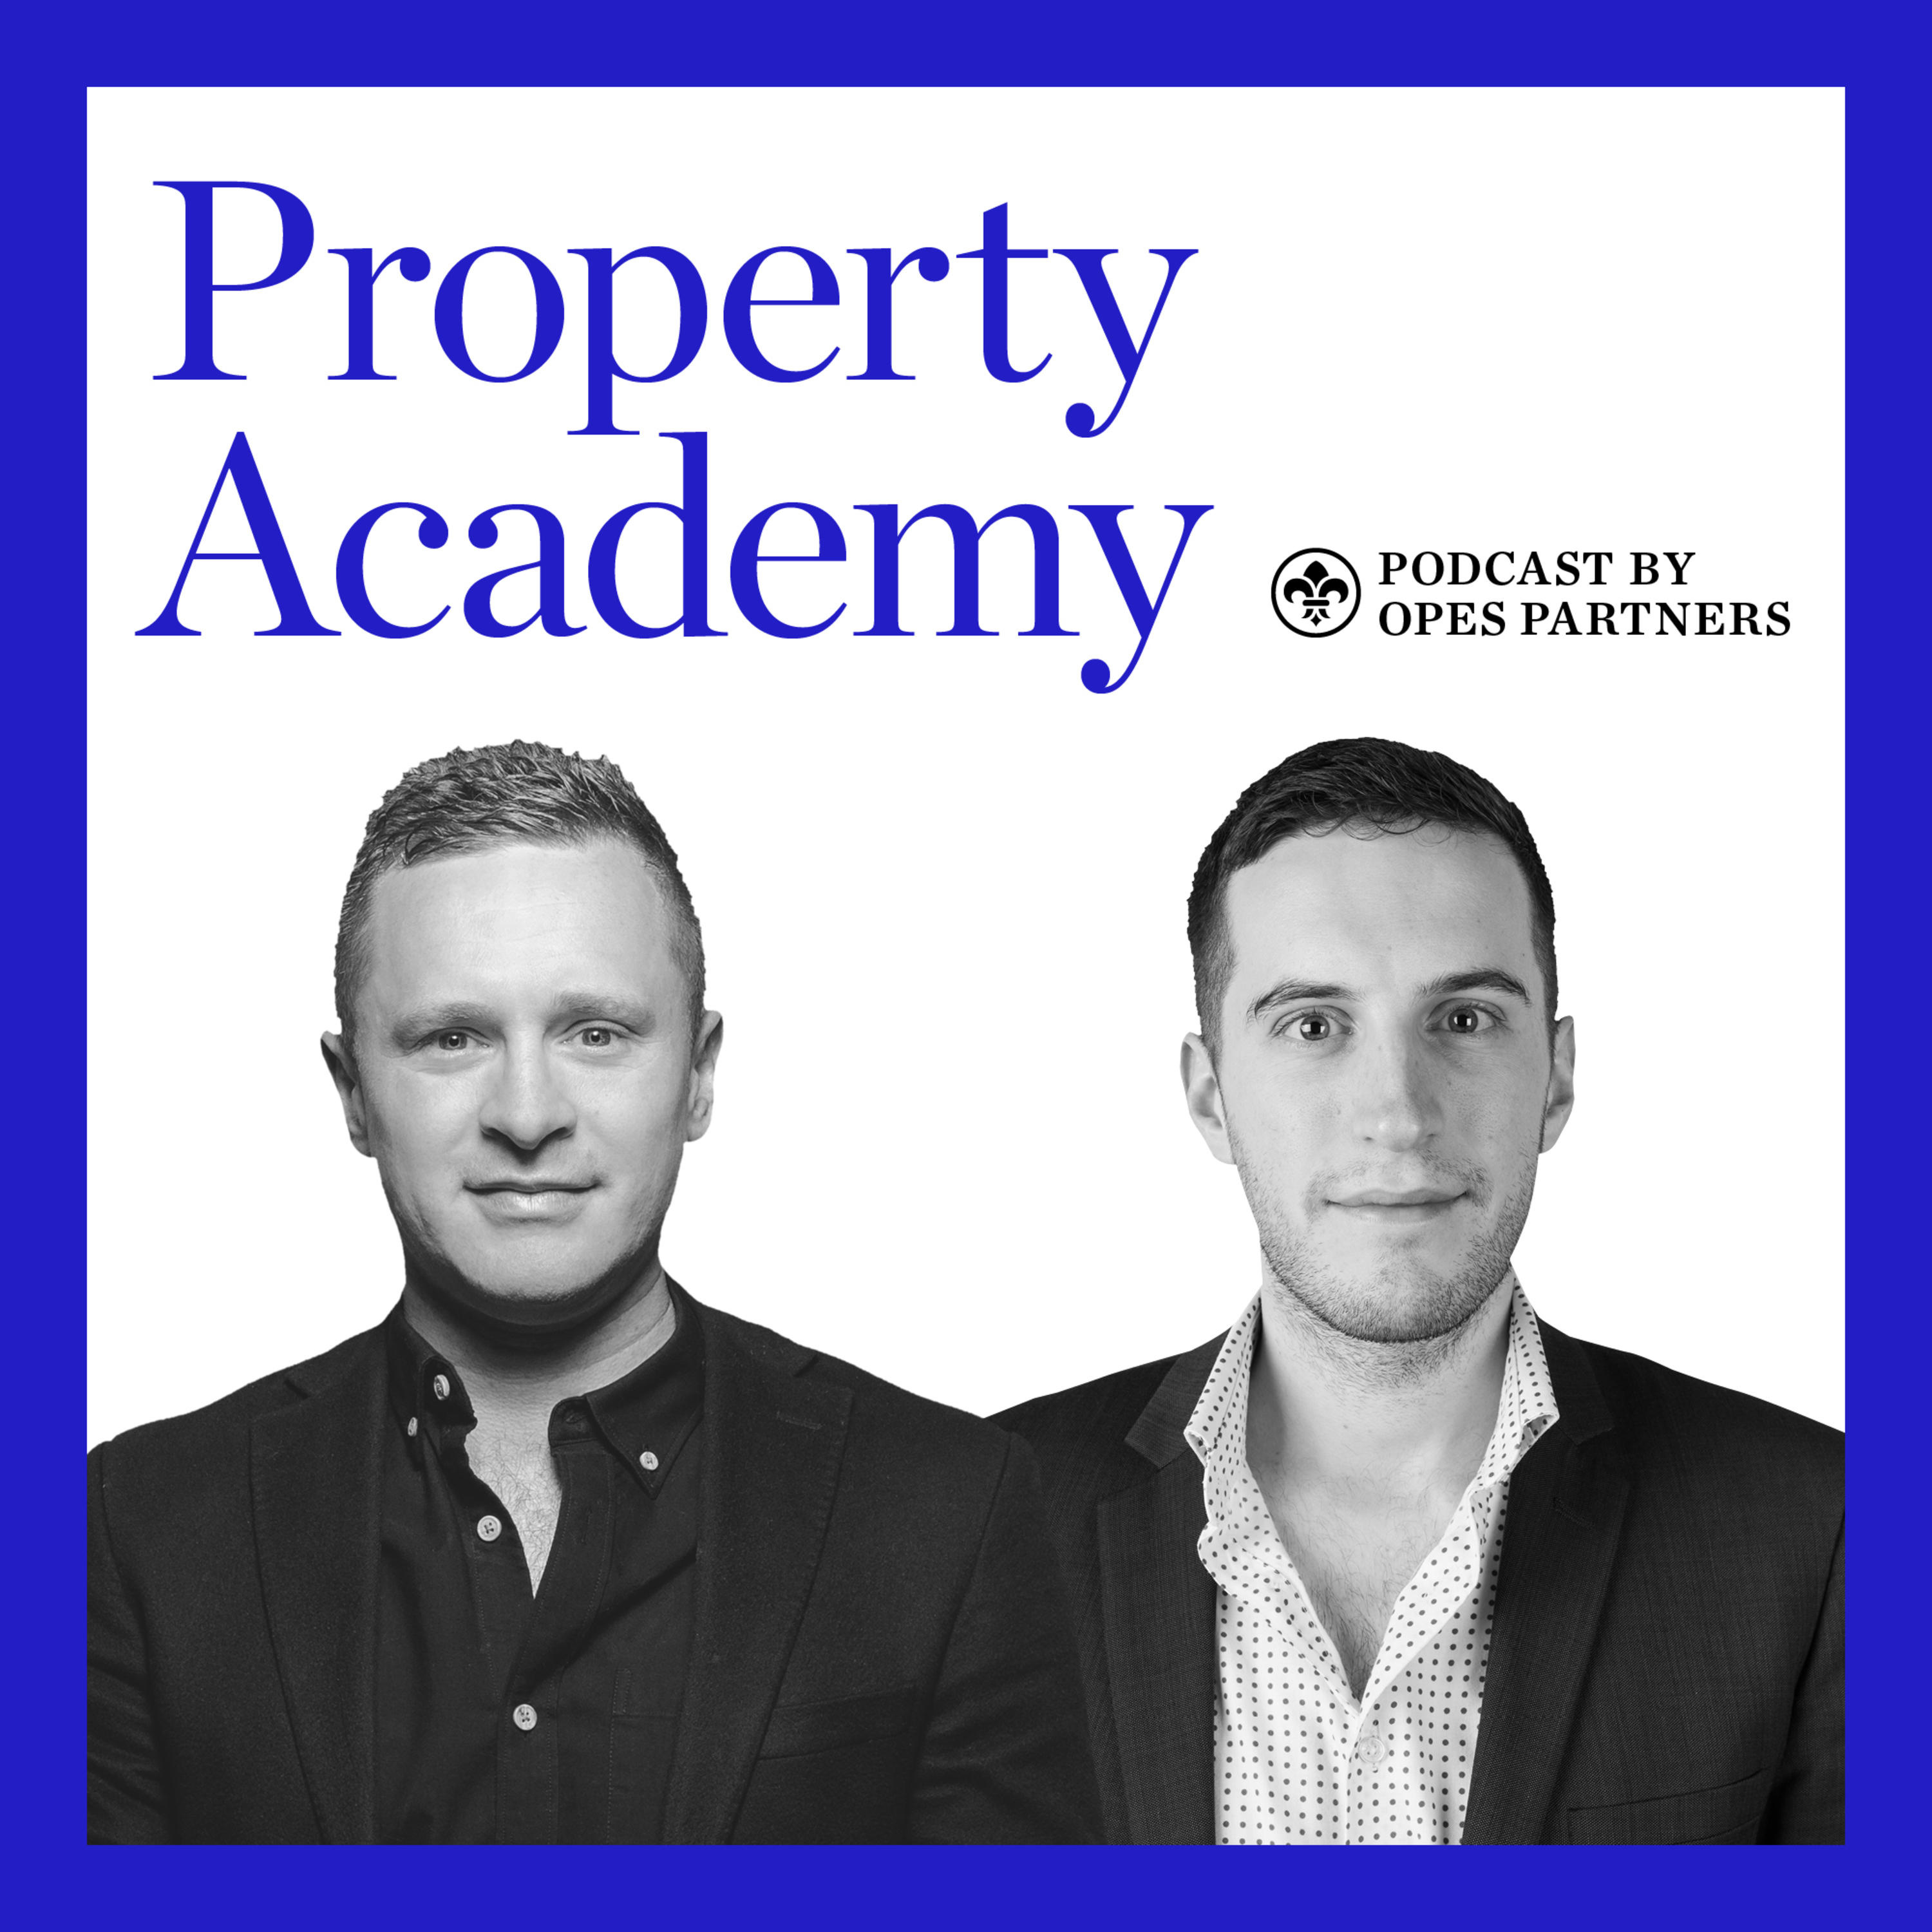 Who Are The Top 7 Property Managers in NZ? Our Top Property Management Picks⎪Ep. 522